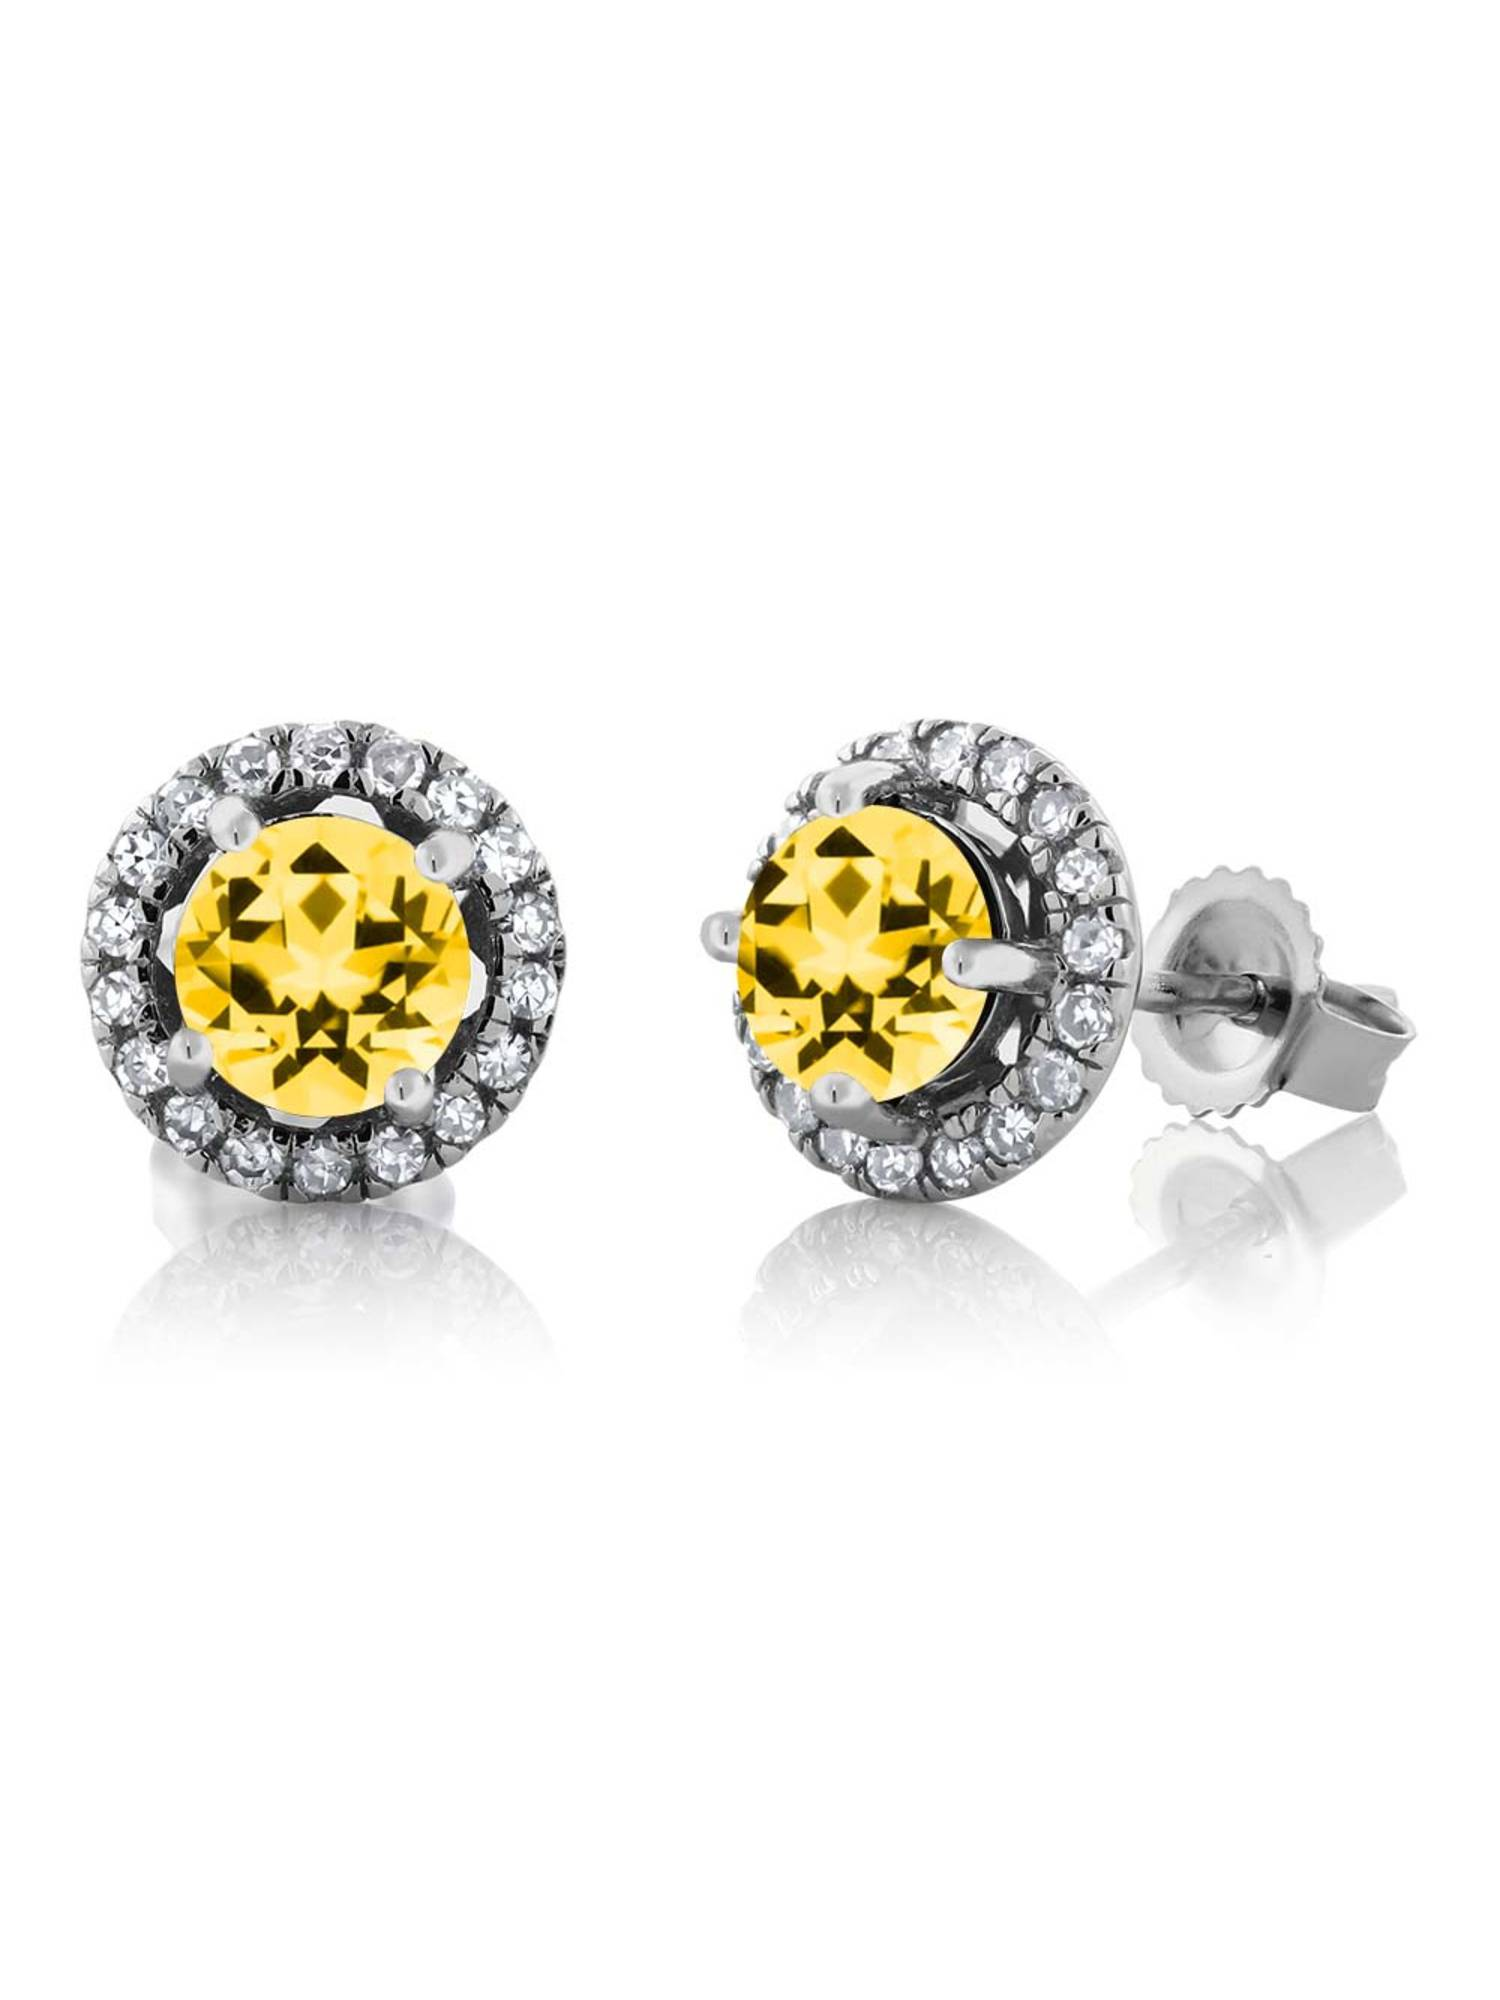 14K White Gold Diamond Earrings Set with Round Honey Topaz from Swarovski by